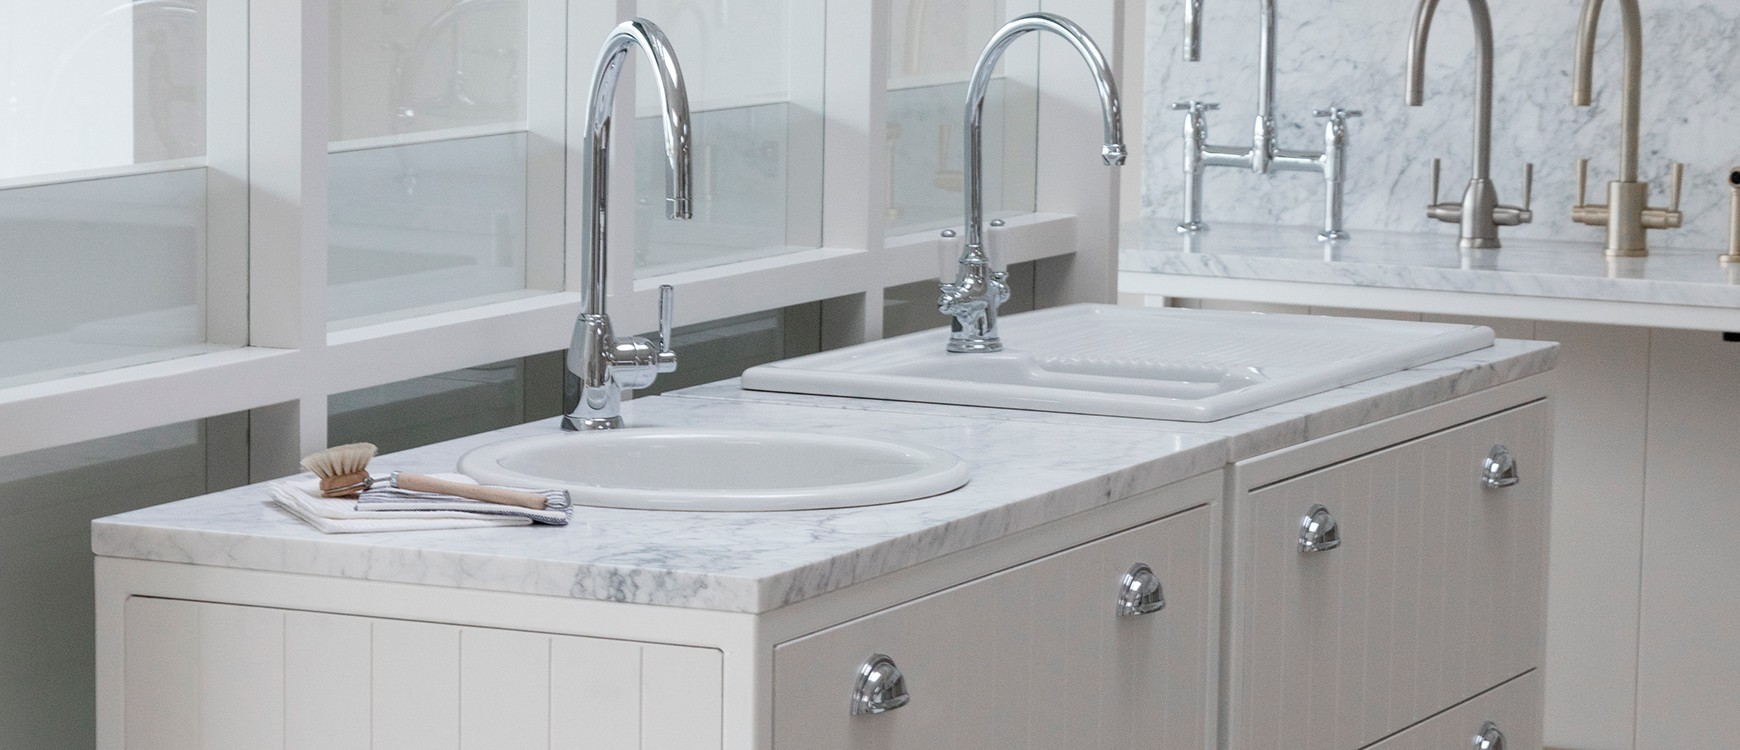 Best Quality Italian Fireclay Sinks in Australia | The English ...